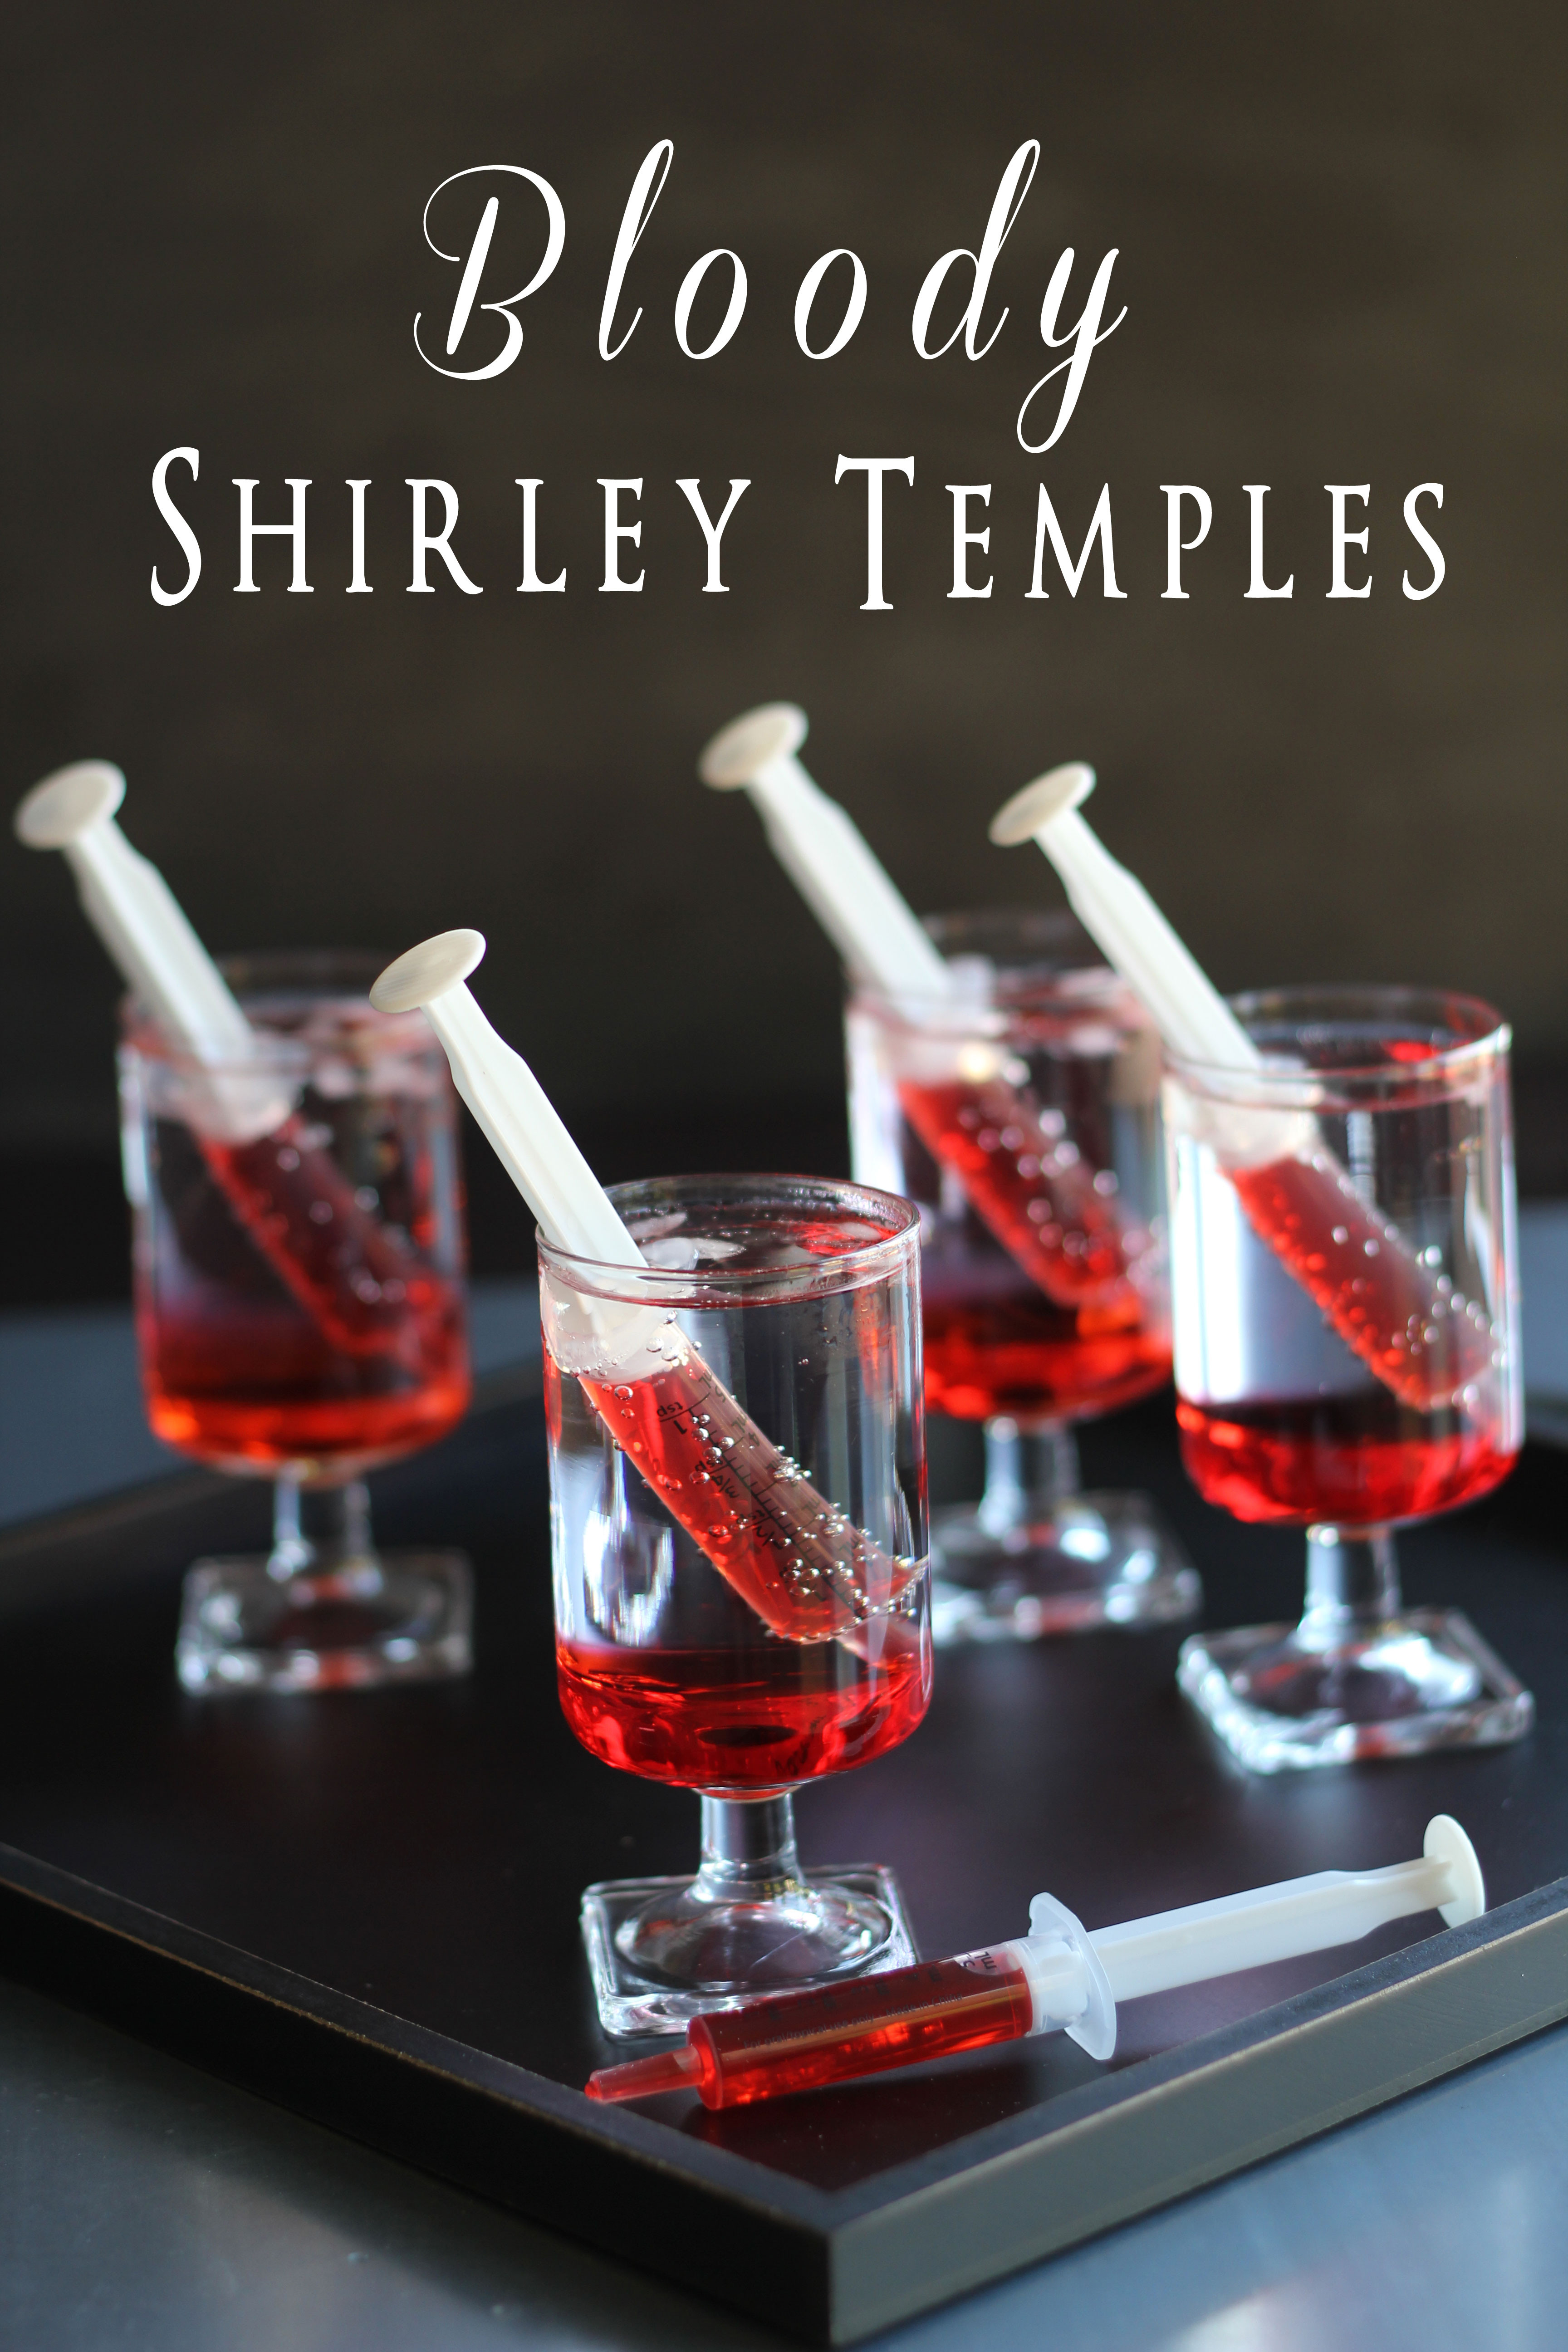 Halloween Party Alcoholic Drinks  Bloody Shirley Temples TGIF This Grandma is Fun